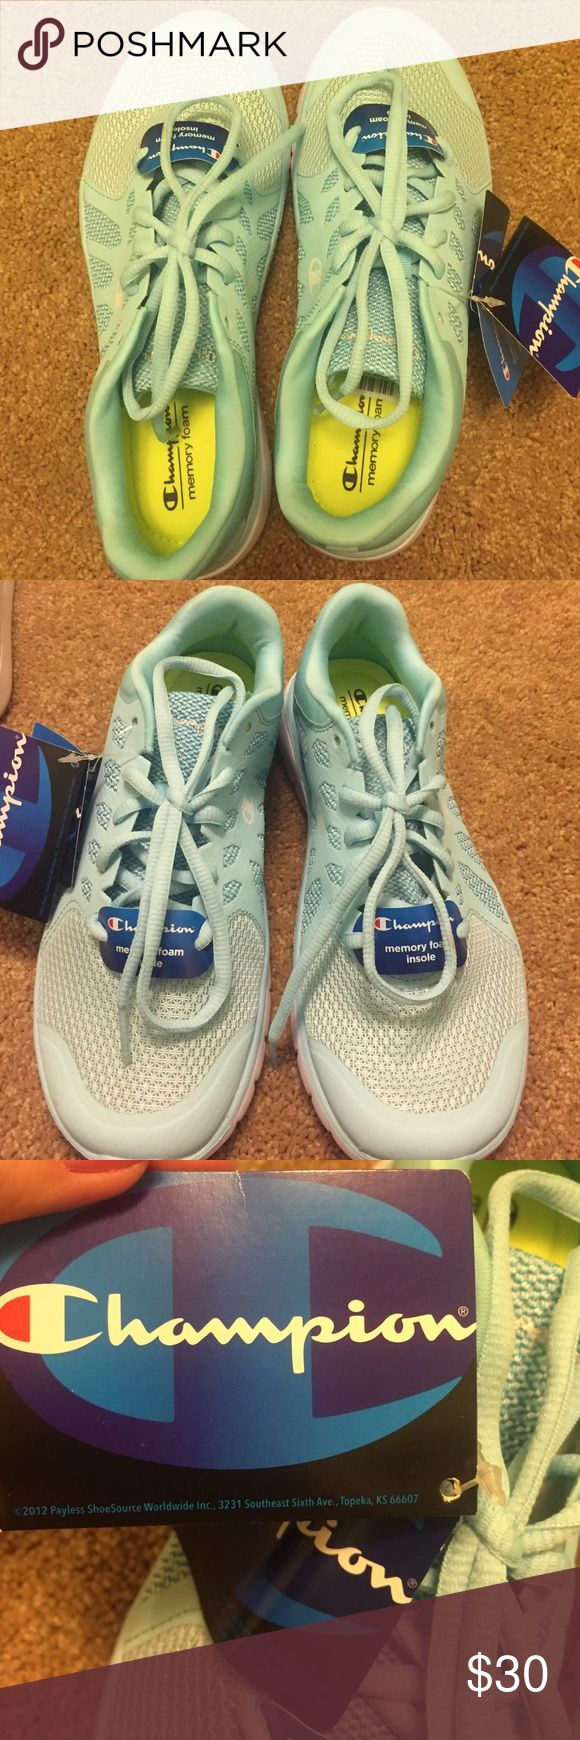 NWT memory foam sneakers NWT memory foam sneakers, never worn. Beautiful sky blue color! They're so comfortable they're just too small for me! Champion Shoes Sneakers